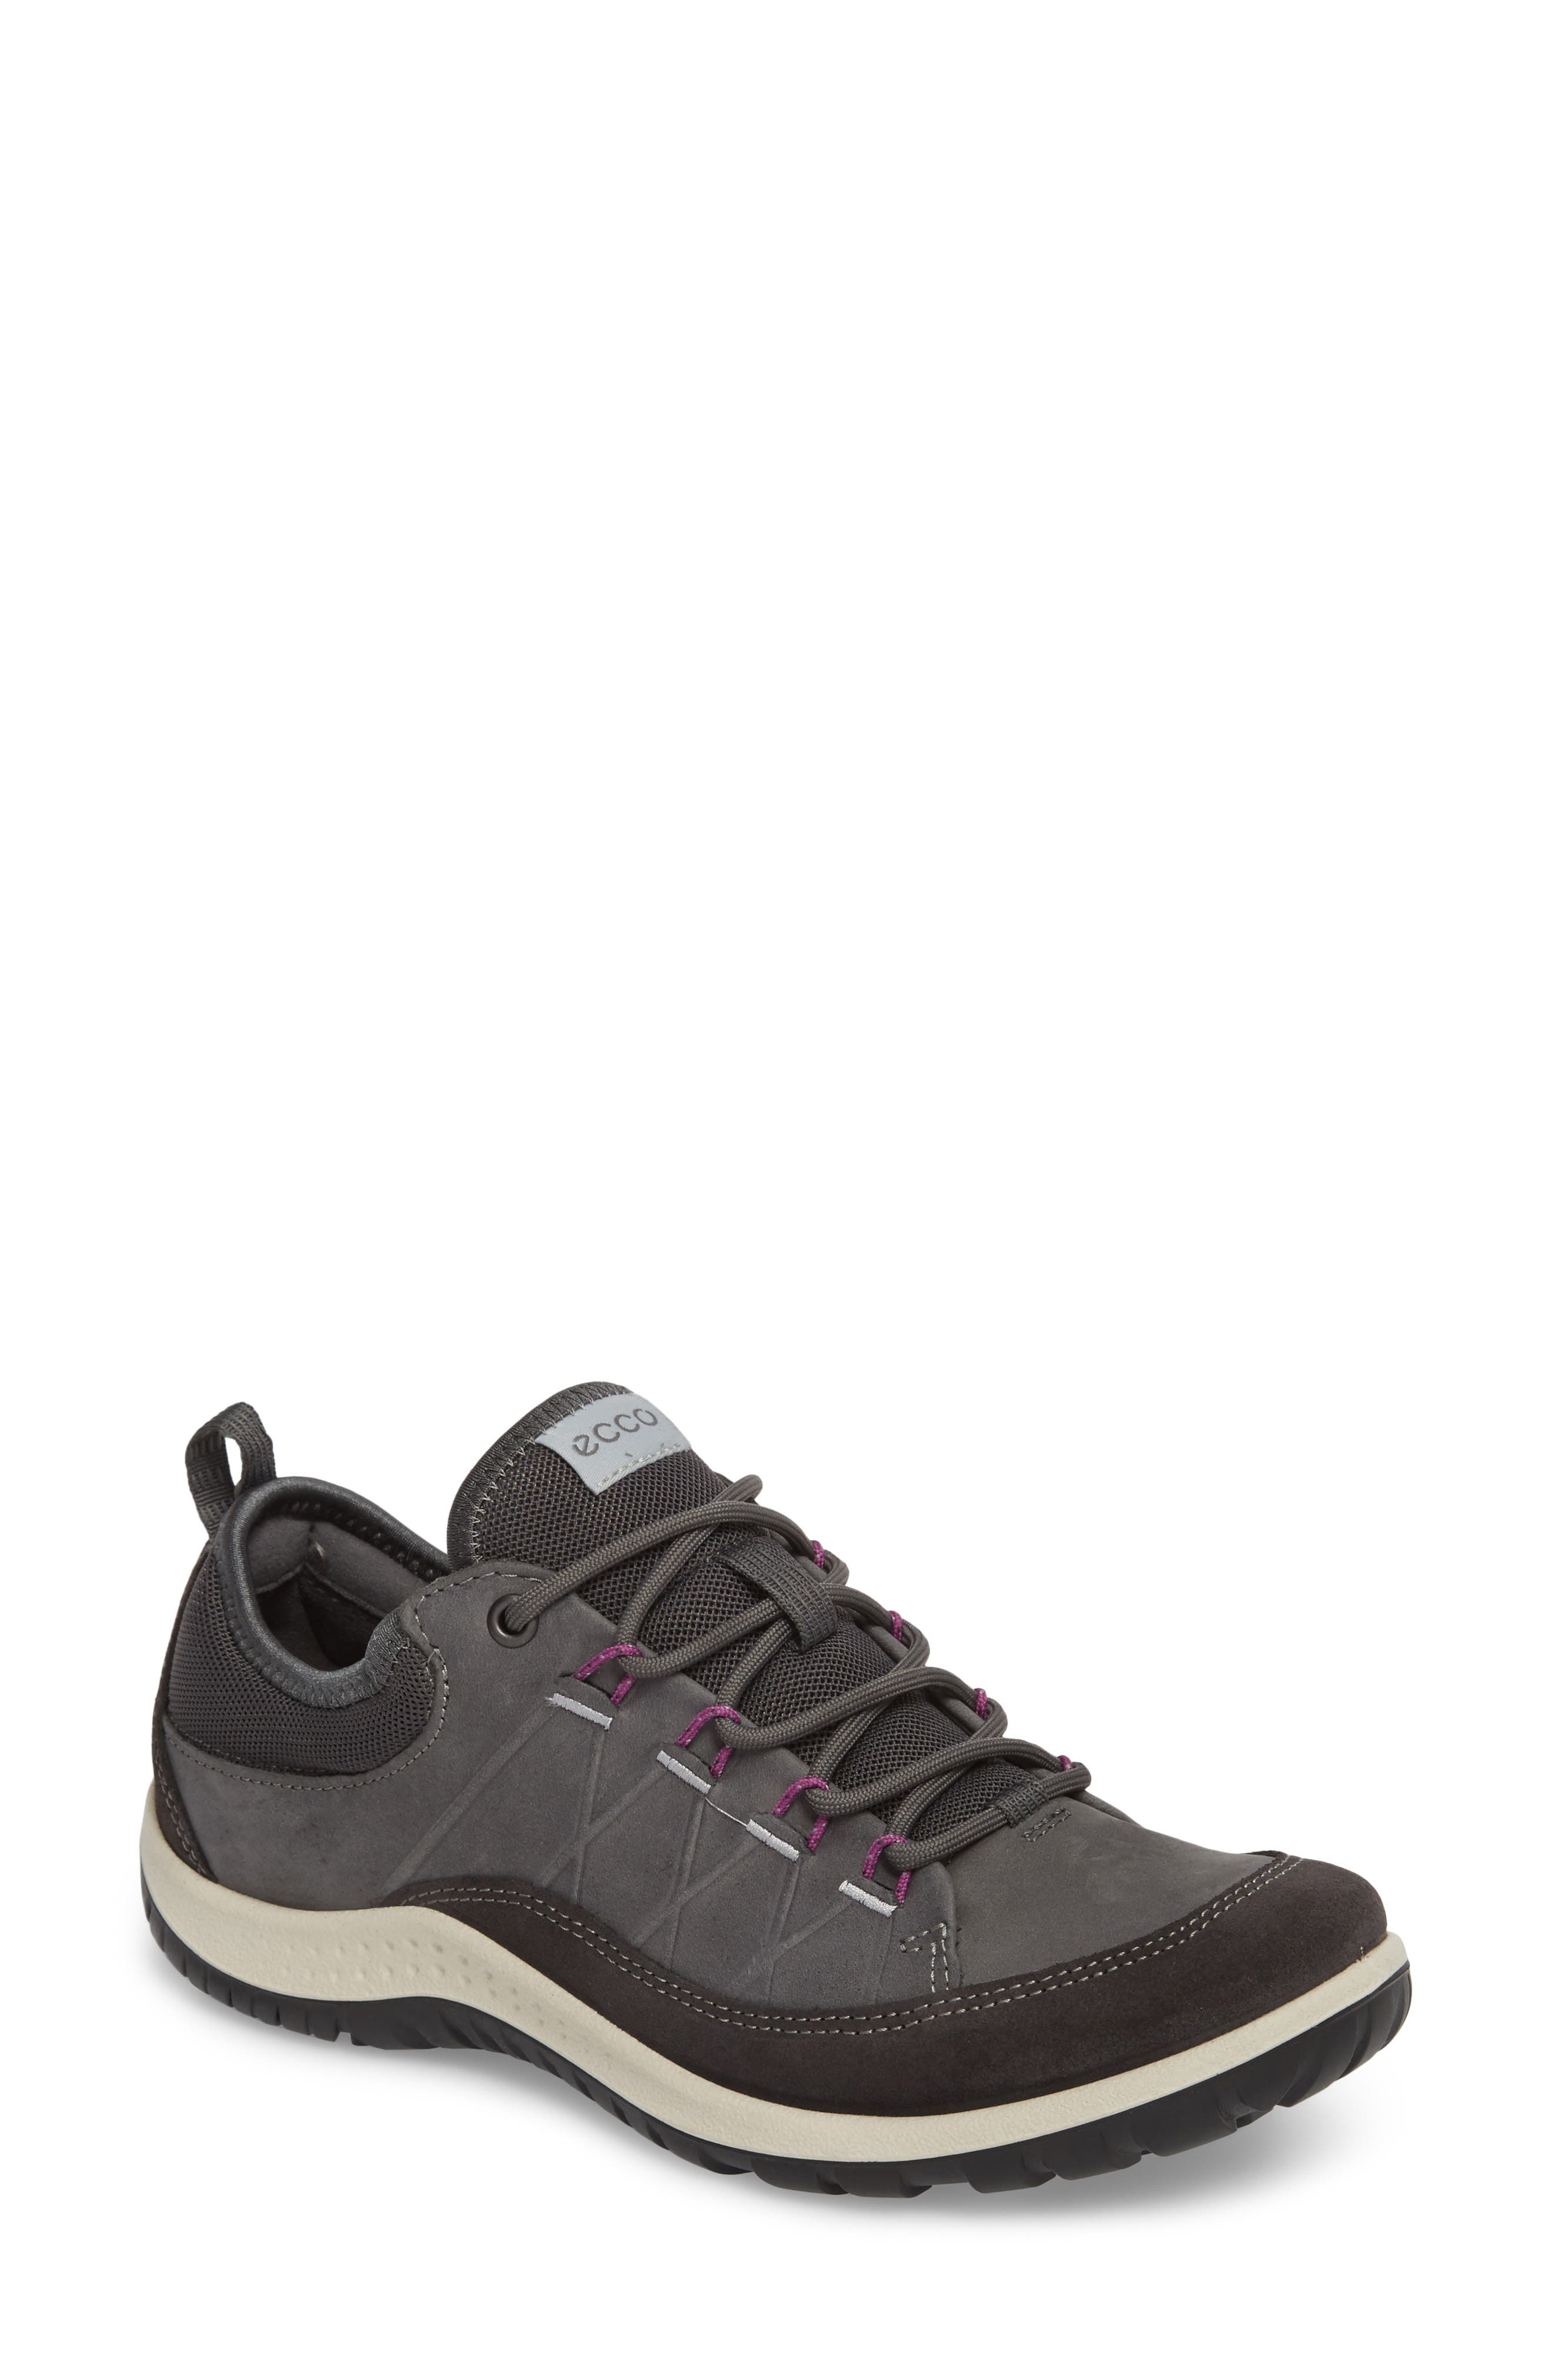 'Aspina' Sneaker,                             Main thumbnail 1, color,                             Moonless Leather